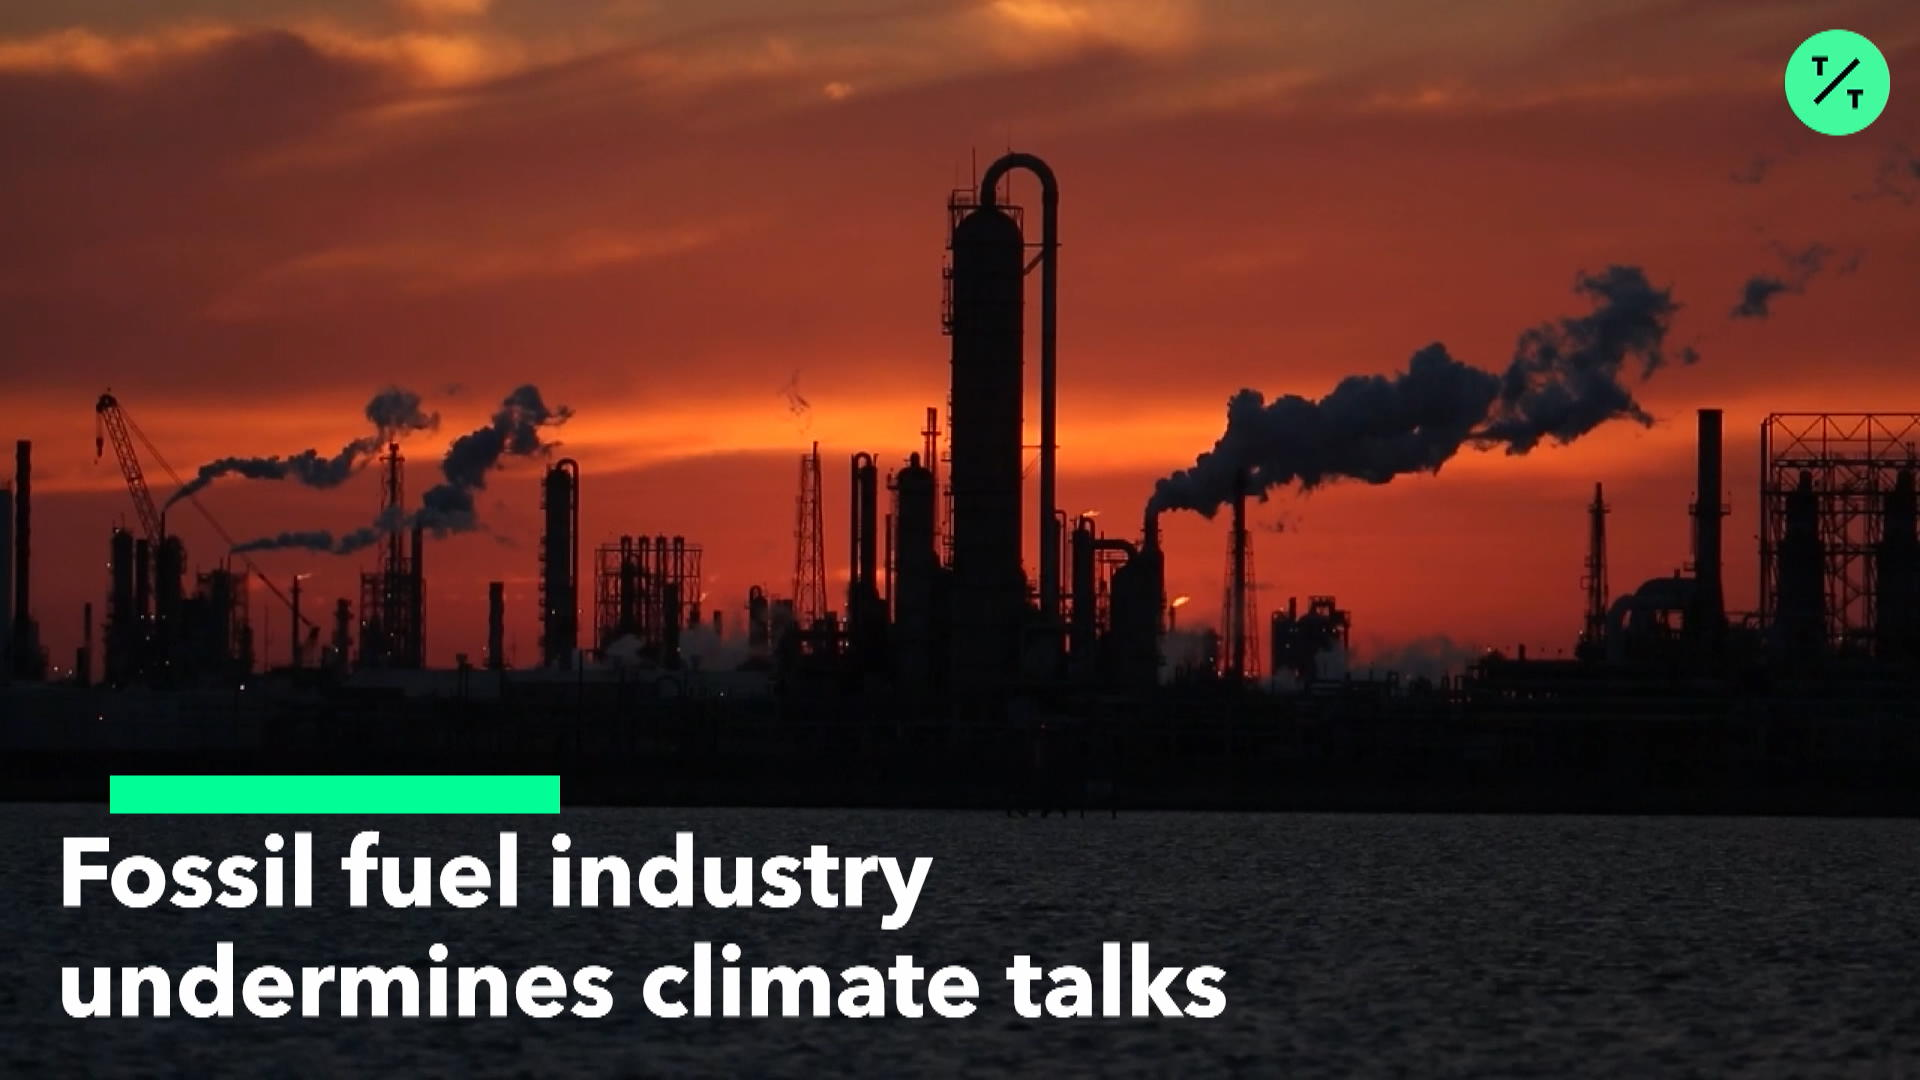 Industry Undermines Climate Talks